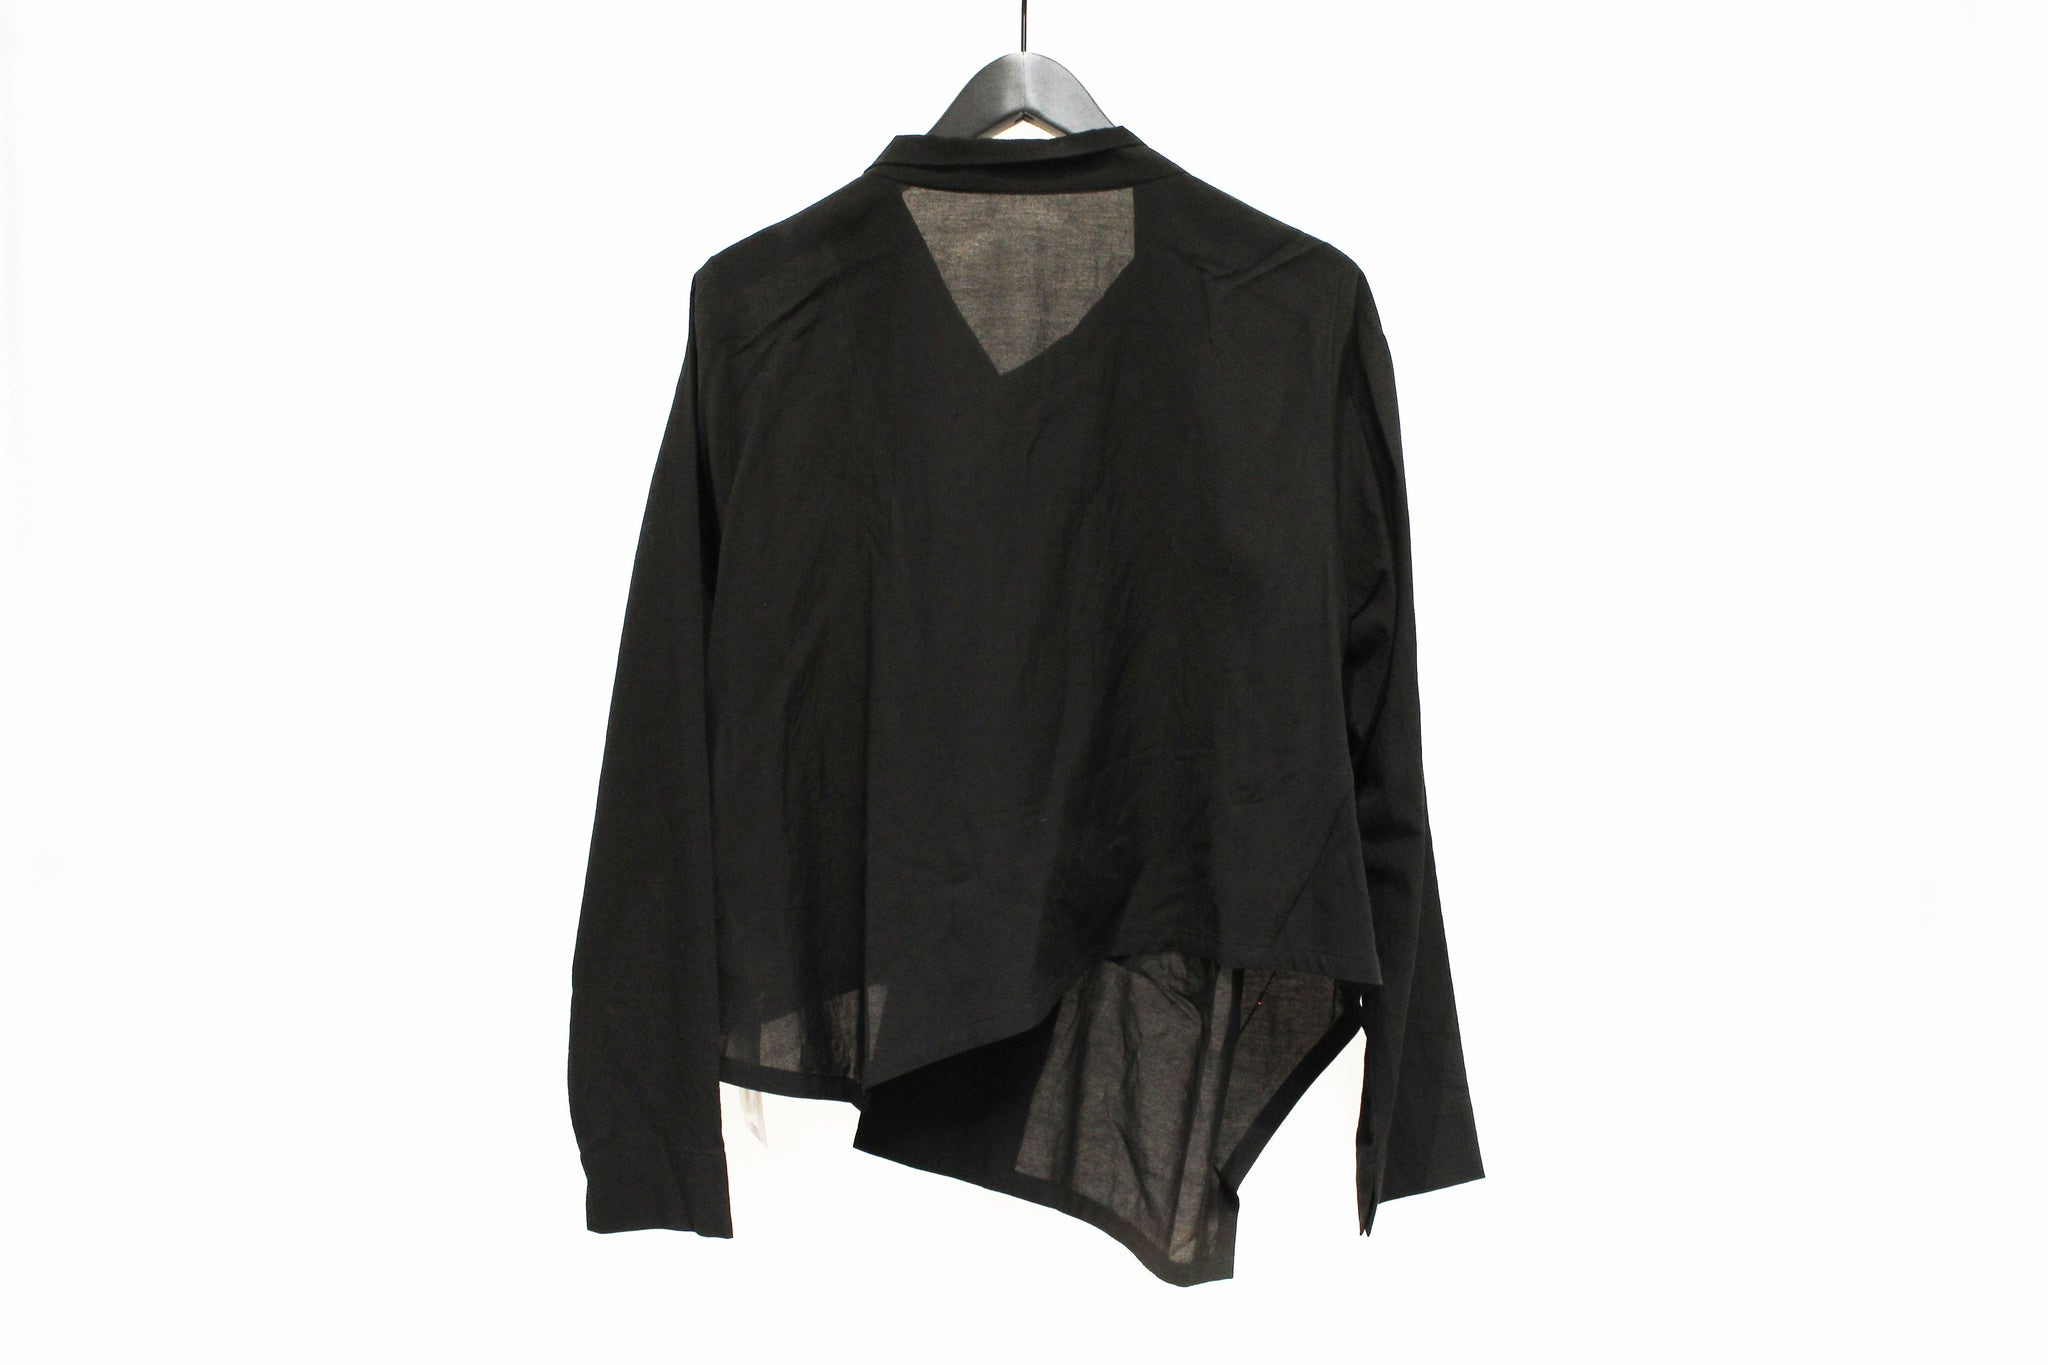 Mefu Black Asymmetric Jacket